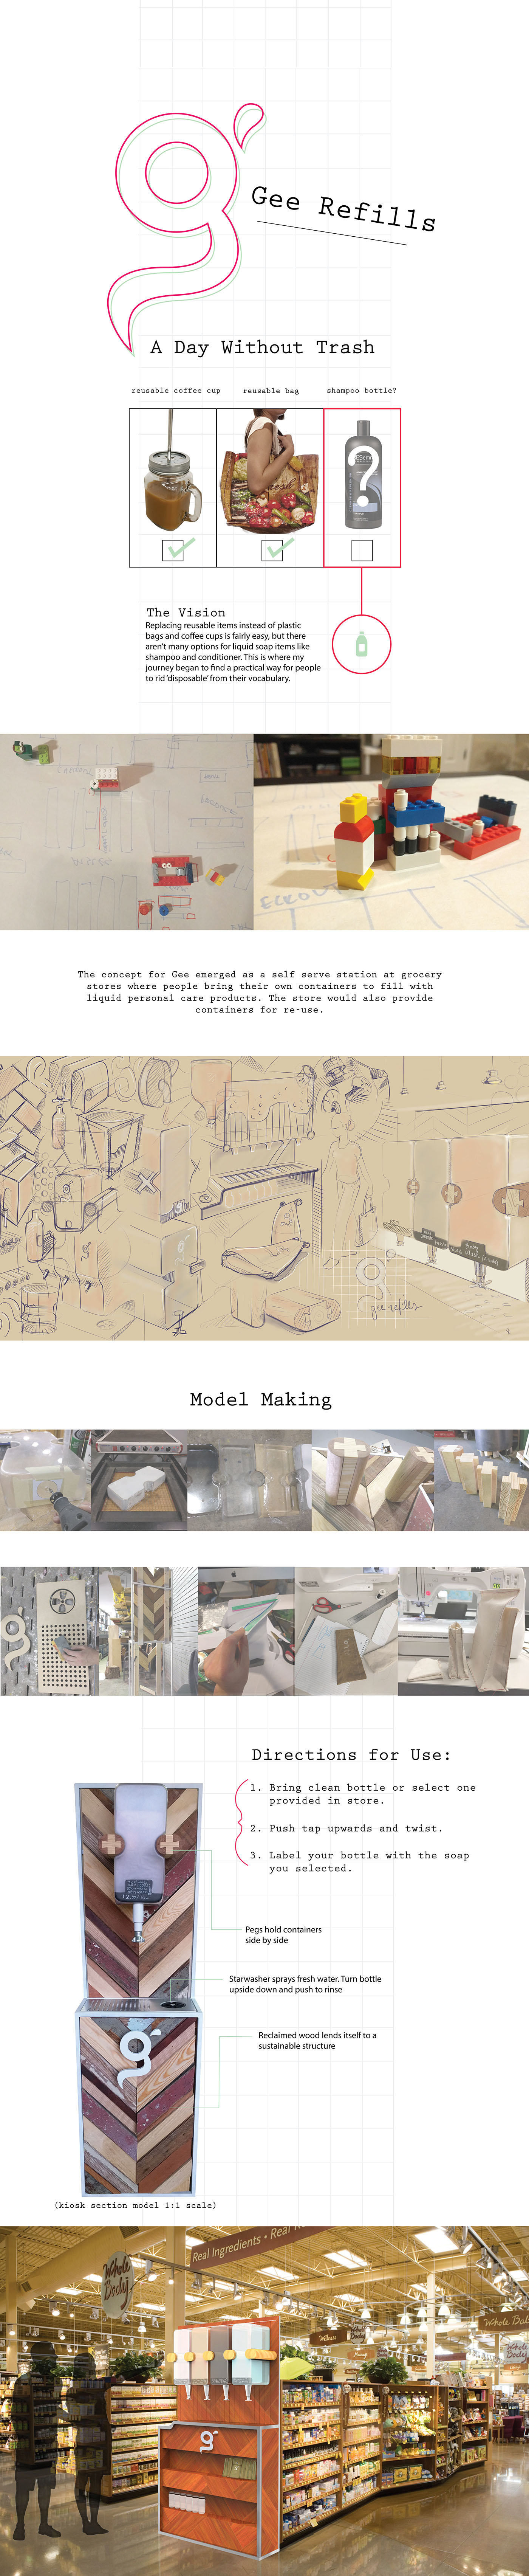 soap Sustainability Refills Kiosk Grocery industrial design sketching SCAD reclaimed wood model